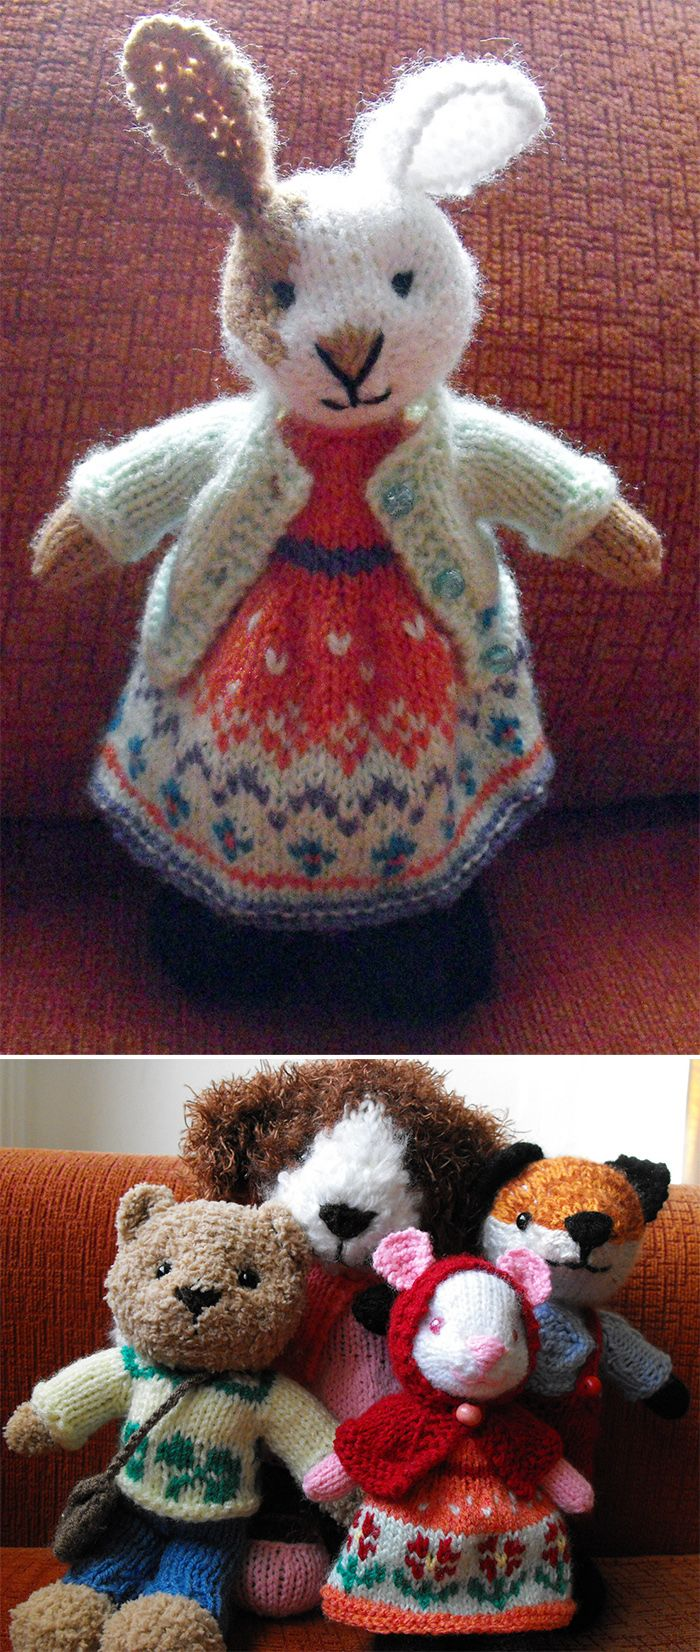 Bunny Rabbit Knitting Patterns | Cat mouse, Dress pants and Dog cat